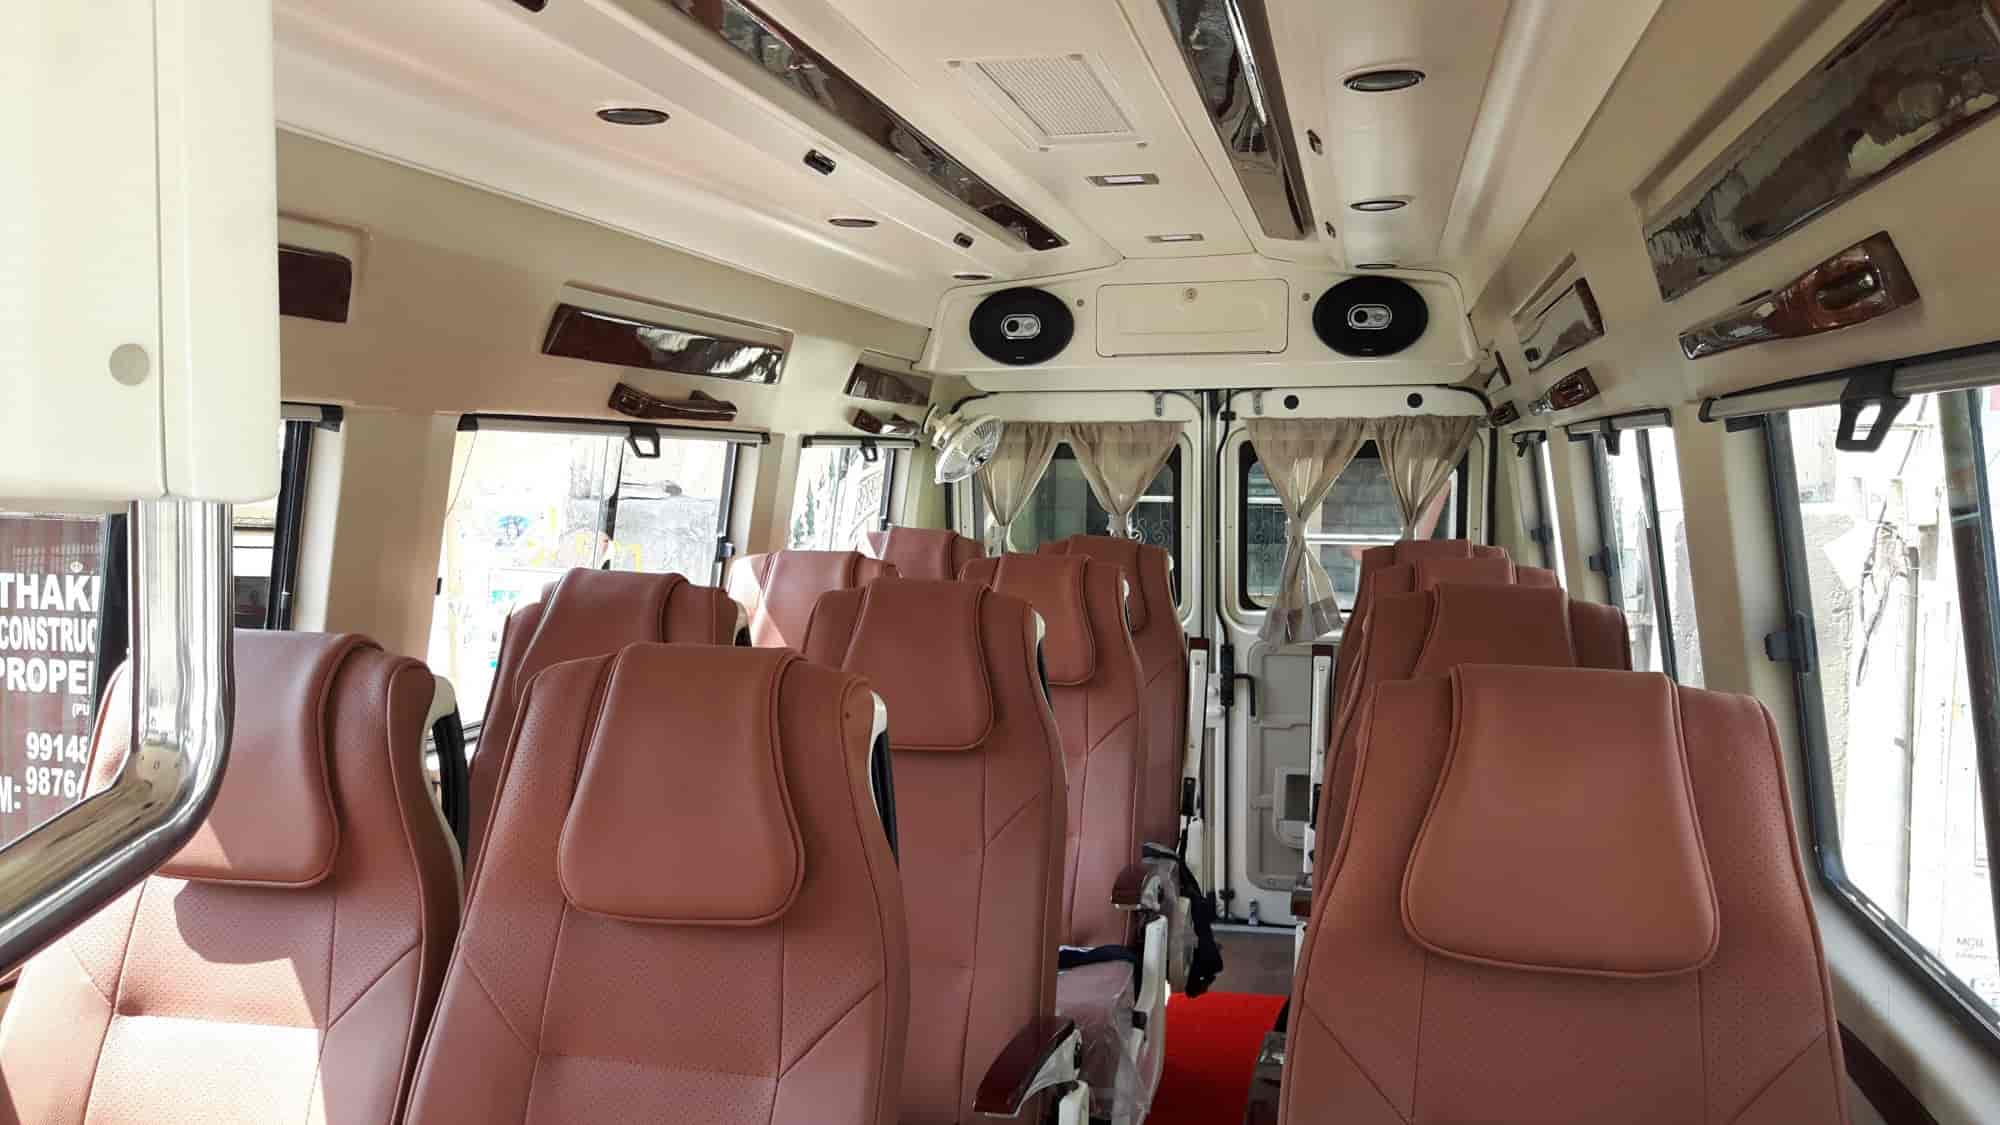 Top 100 Bus On Hire in Chandigarh - Best Bus Rental Services - Justdial